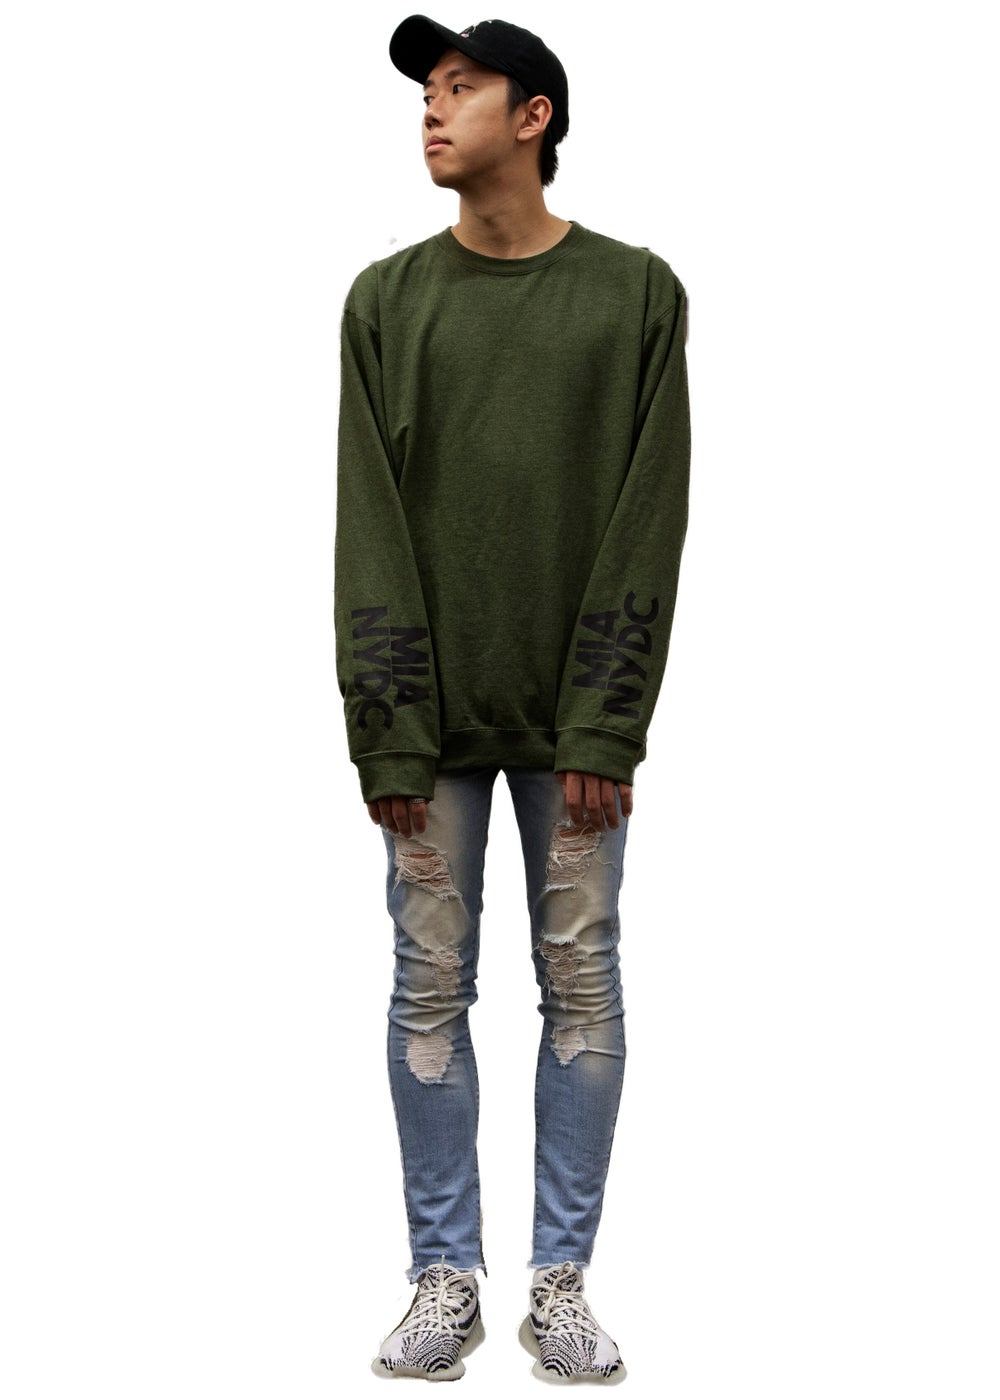 Image of army heather crewneck